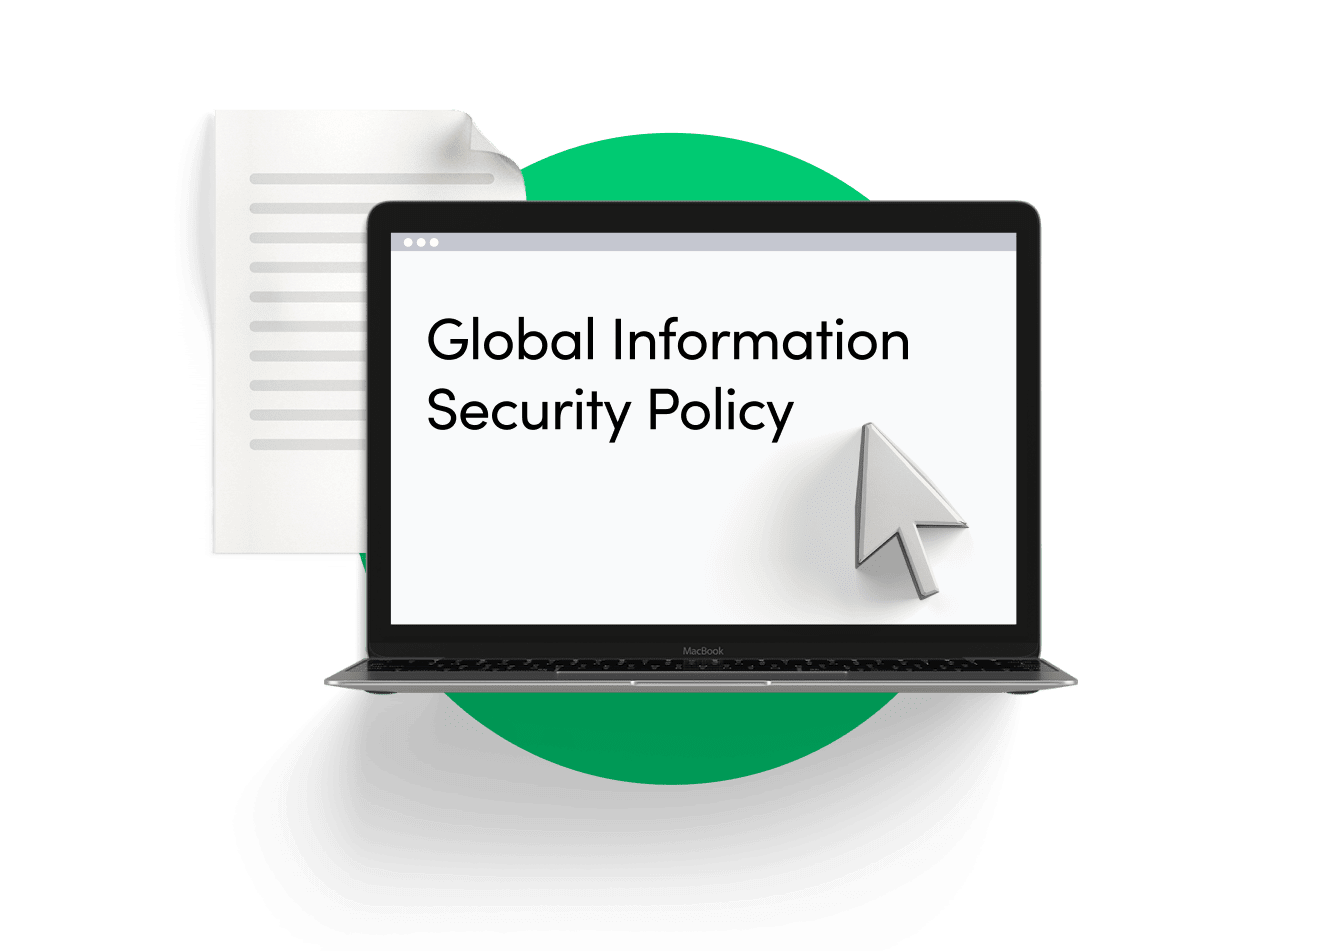 GlobalInformationSecurity